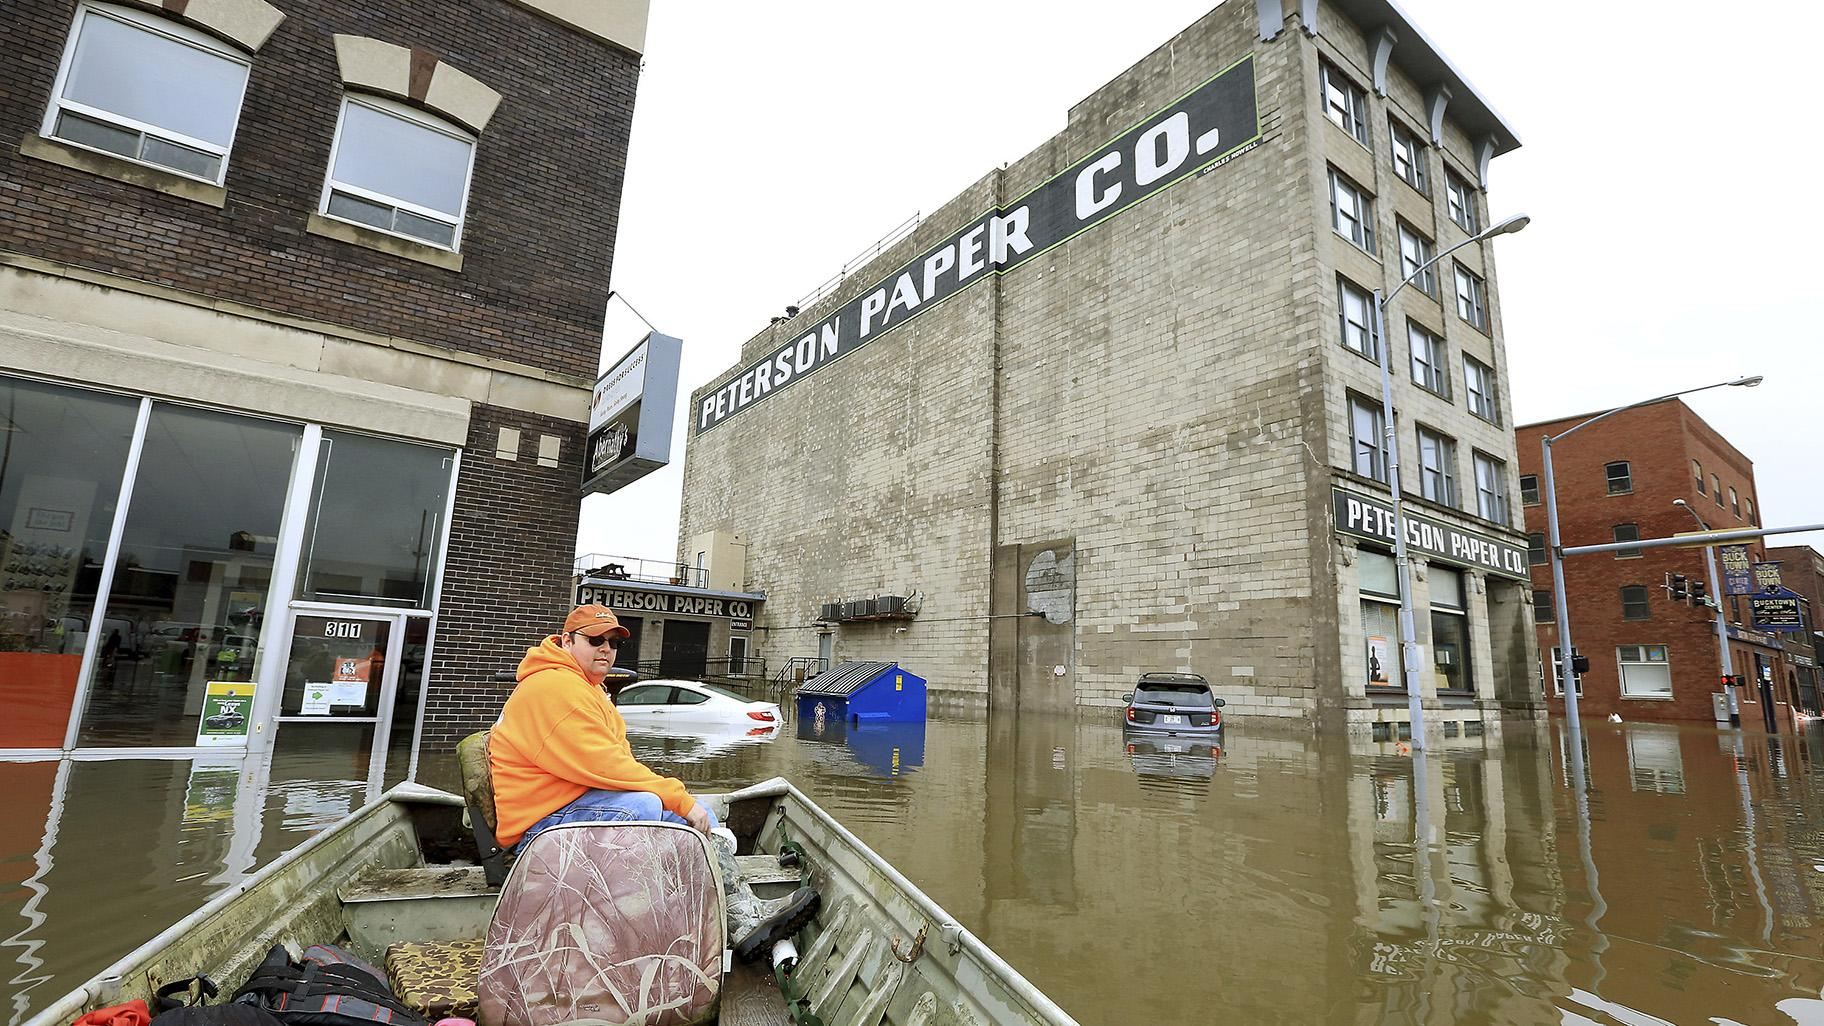 Ryan Lincoln maneuvers his boat through floodwater in downtown Davenport, Iowa, on Thursday, May 2, 2019. (Kevin E. Schmidt / Quad City Times via AP)